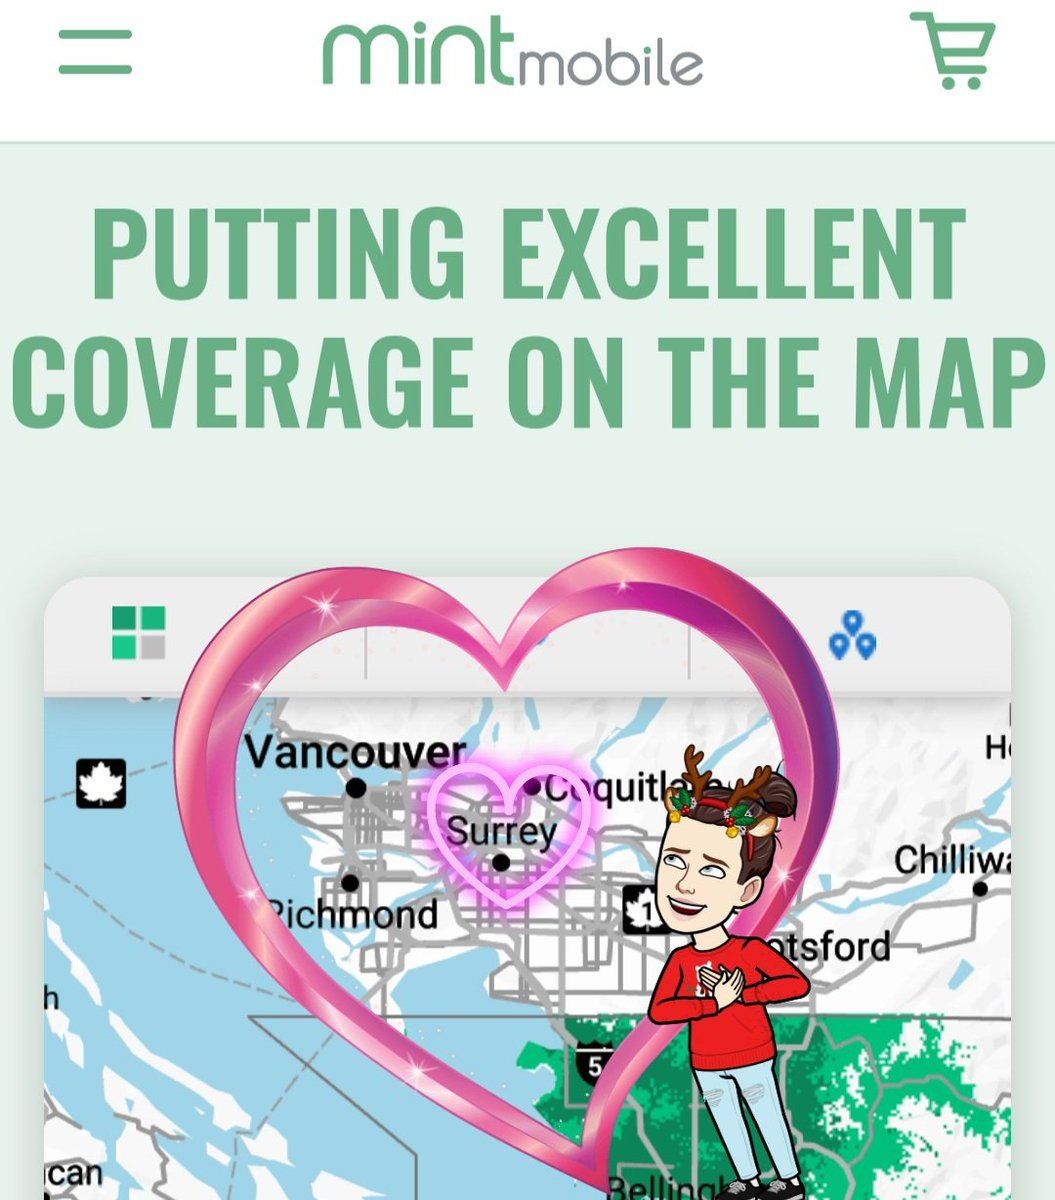 @VancityReynolds Can u make this coverage spread just a bit north... like the Cloverdal portion of Surrey? I'm sure you know of it! I will 100% switch. @VancityReynolds @Mintmobile